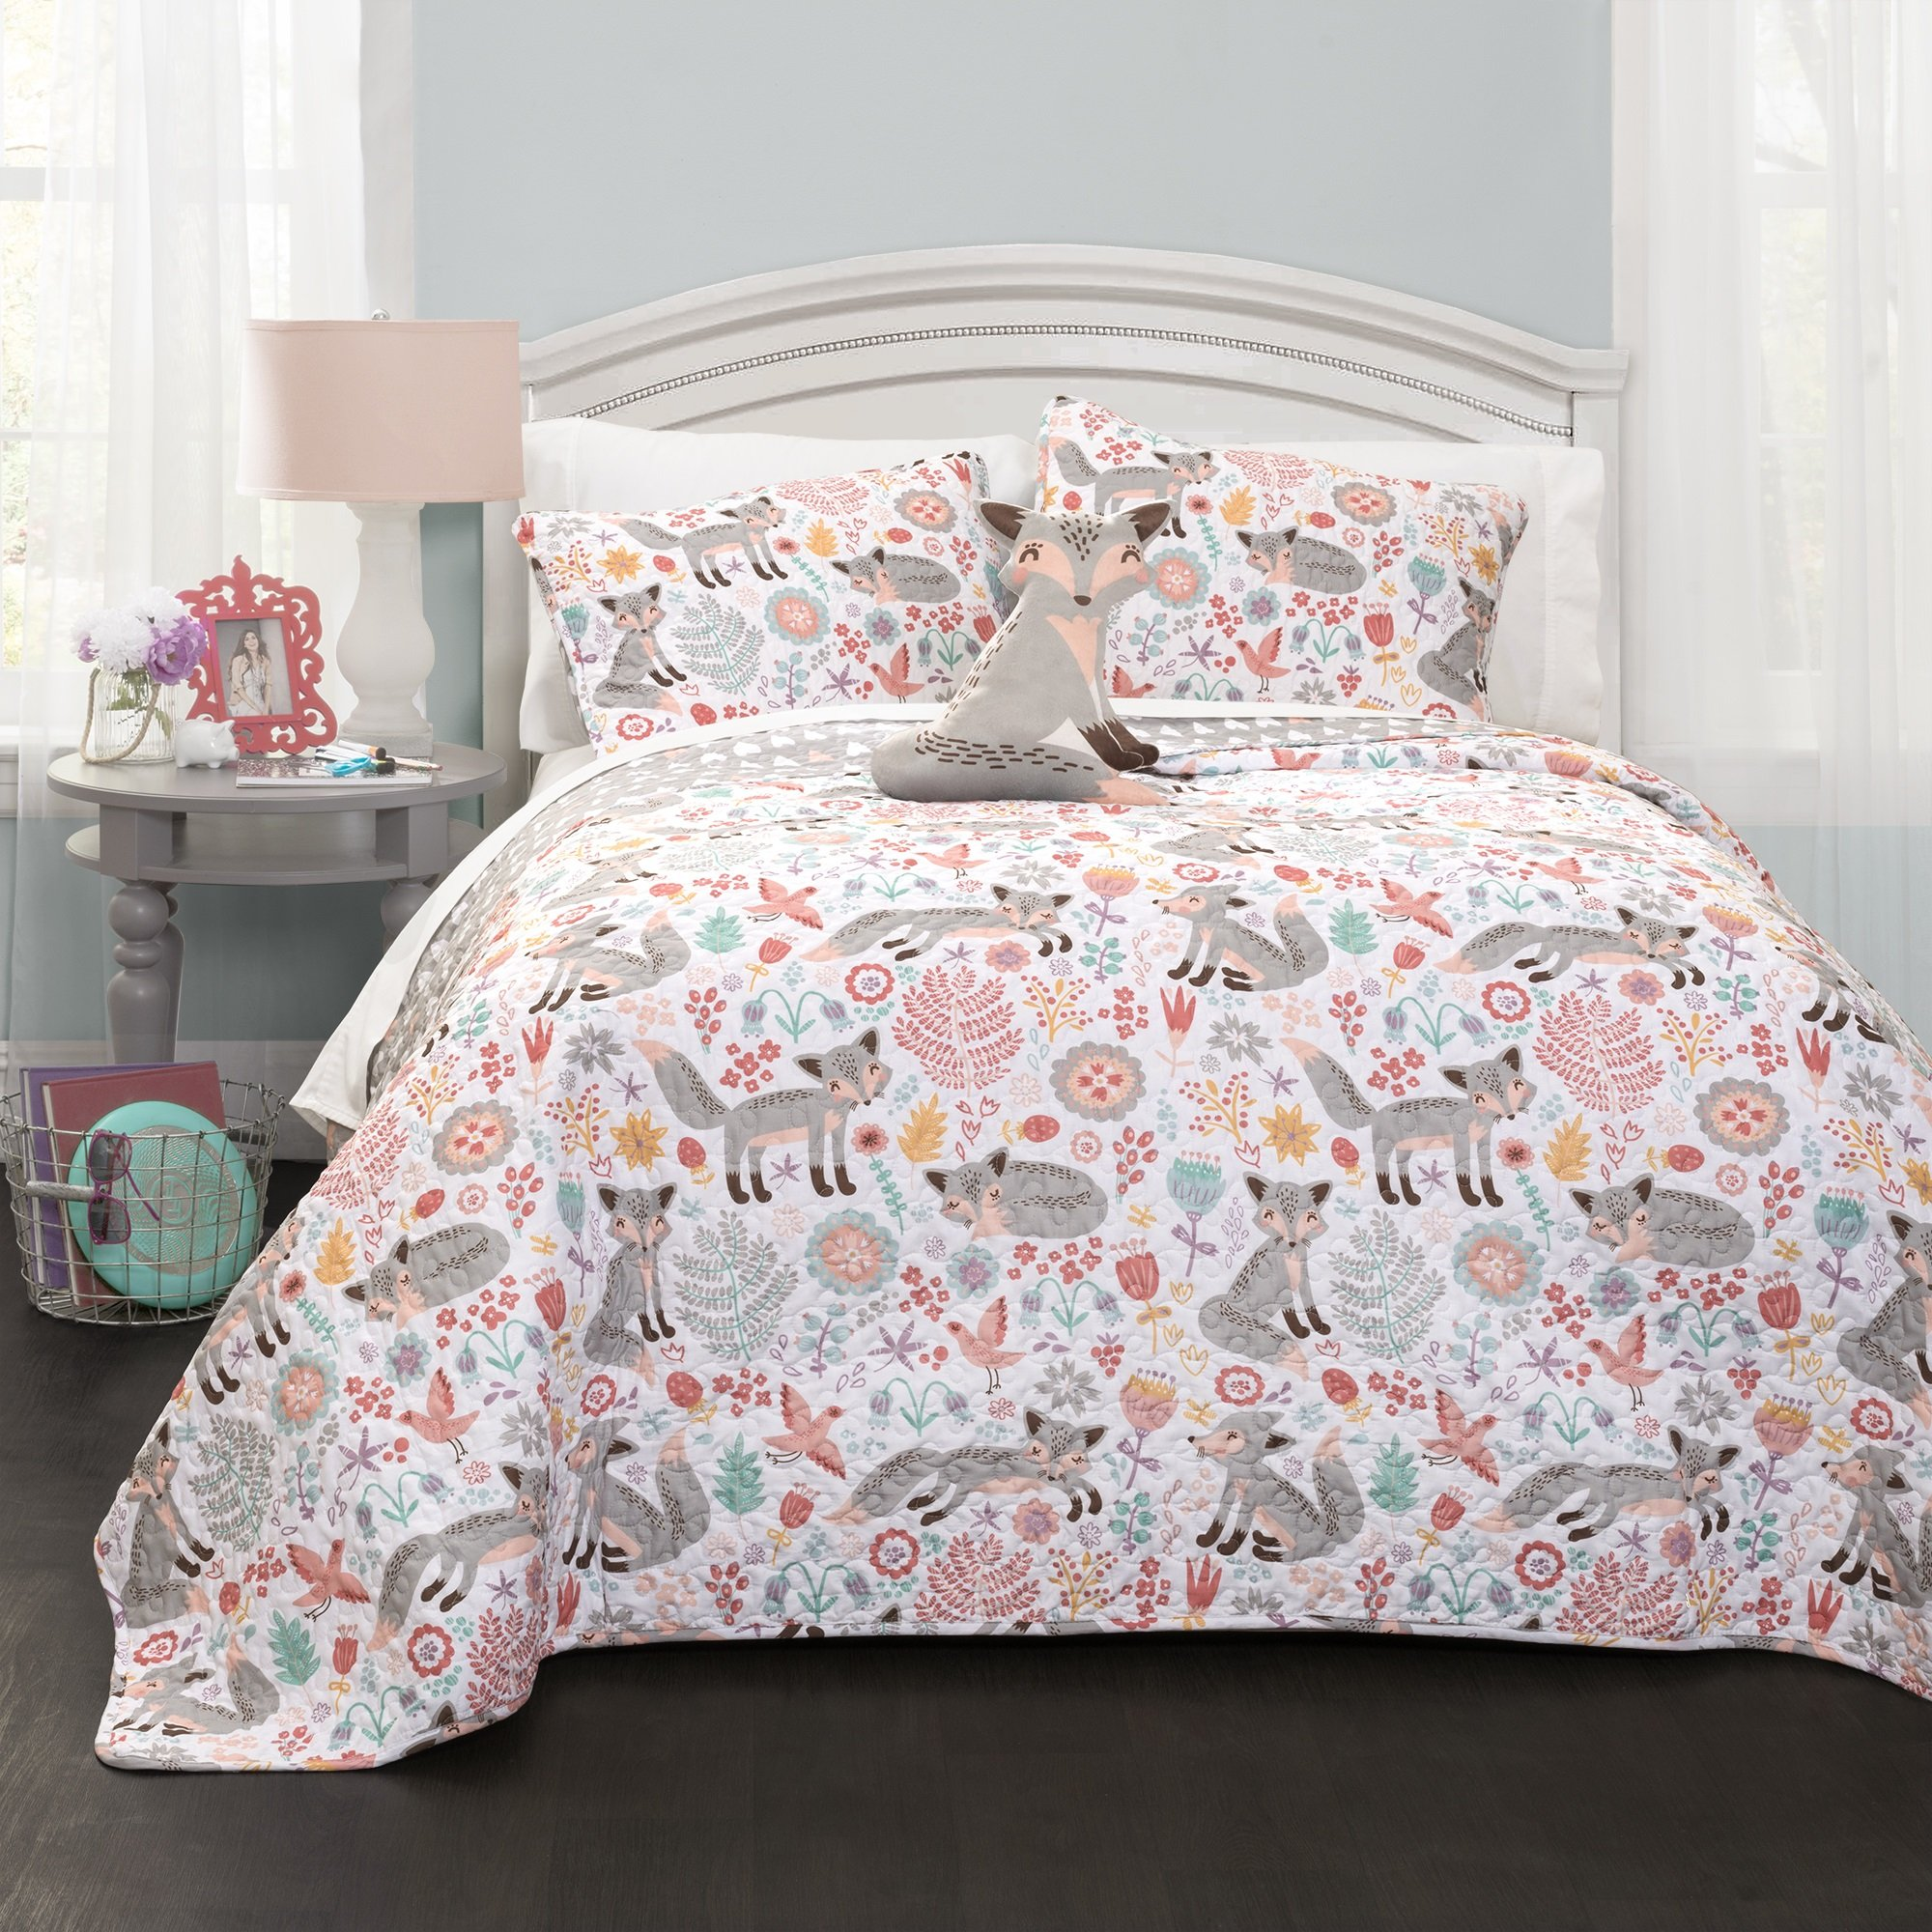 4 Piece Playful Pixie Fox Patterned Reversible Quilt Set Full/Queen Size, Bright Wild Jungle Foxes Birds Forest Leafs Printed Blossoming Flowers Bedding, Artistic Animal Lover Bedroom, Grey, Pink